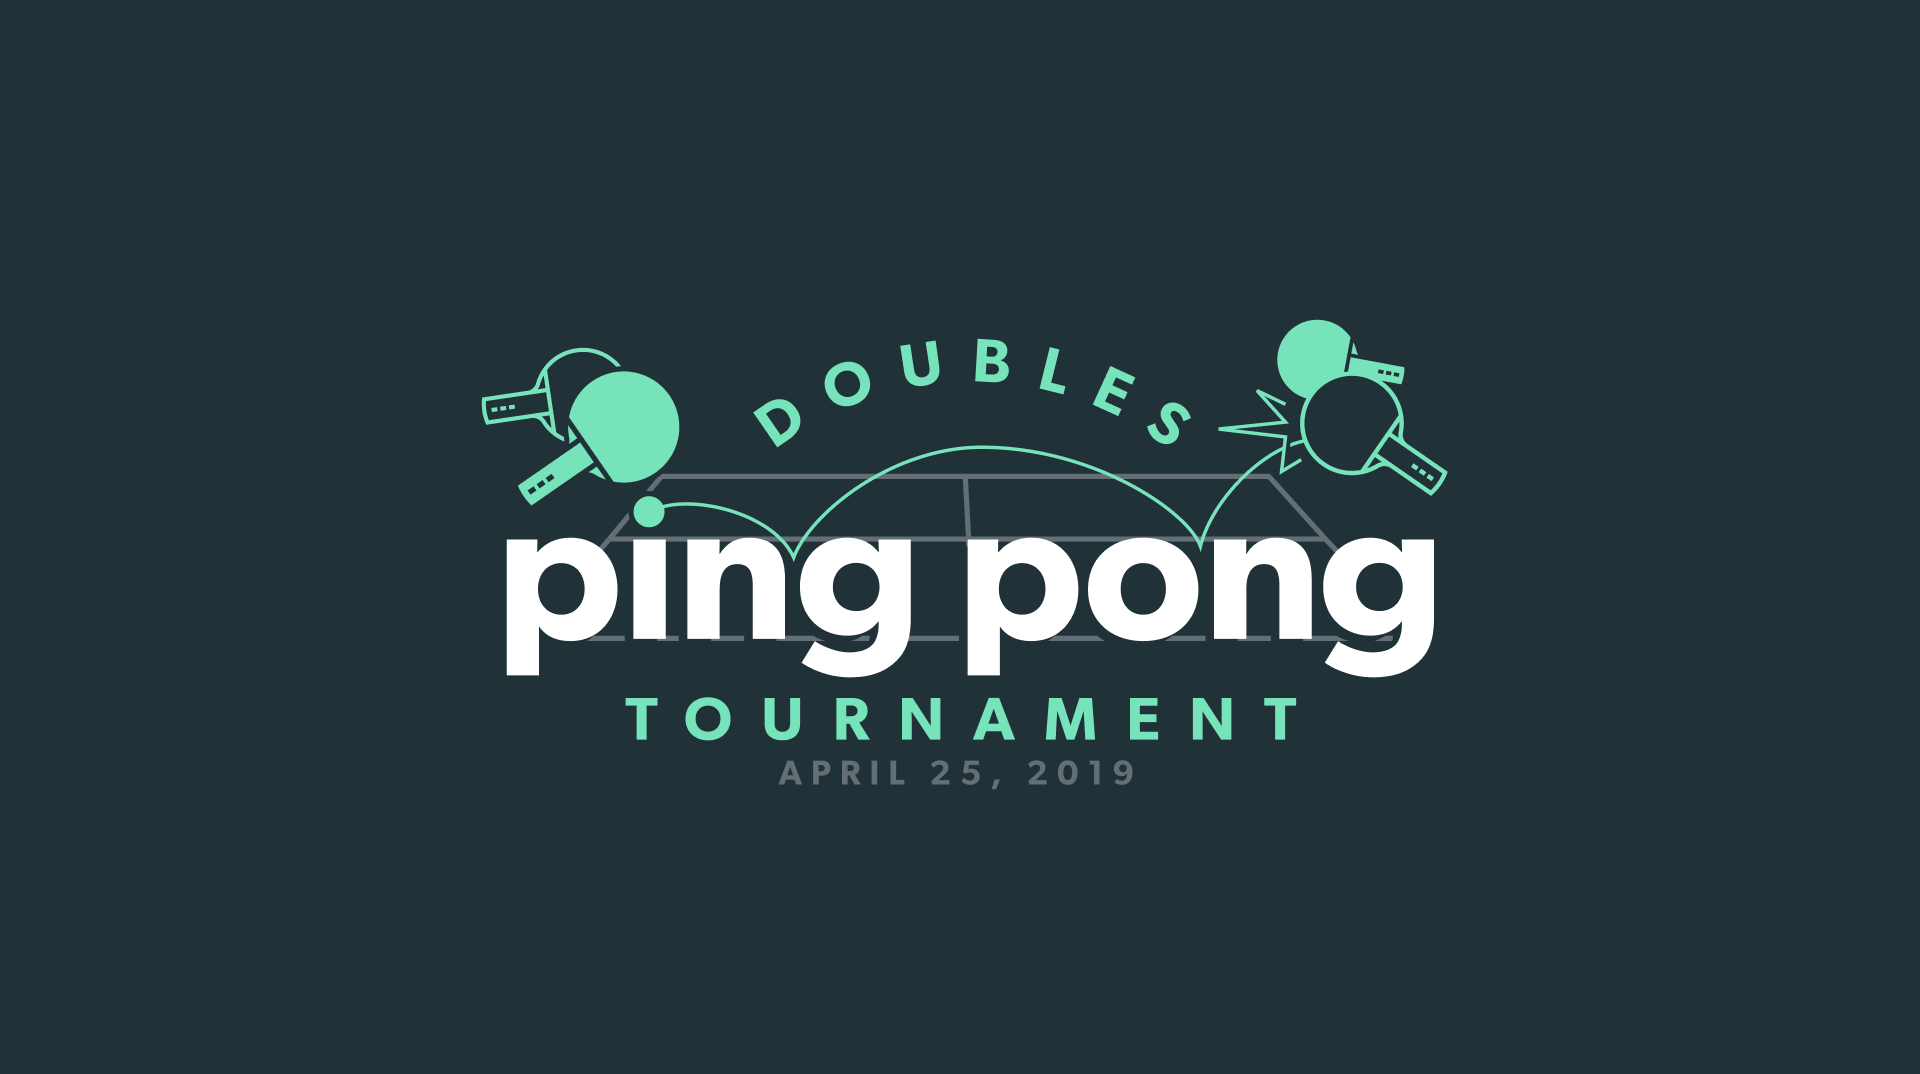 2019 ping pong tournament promotional graphic